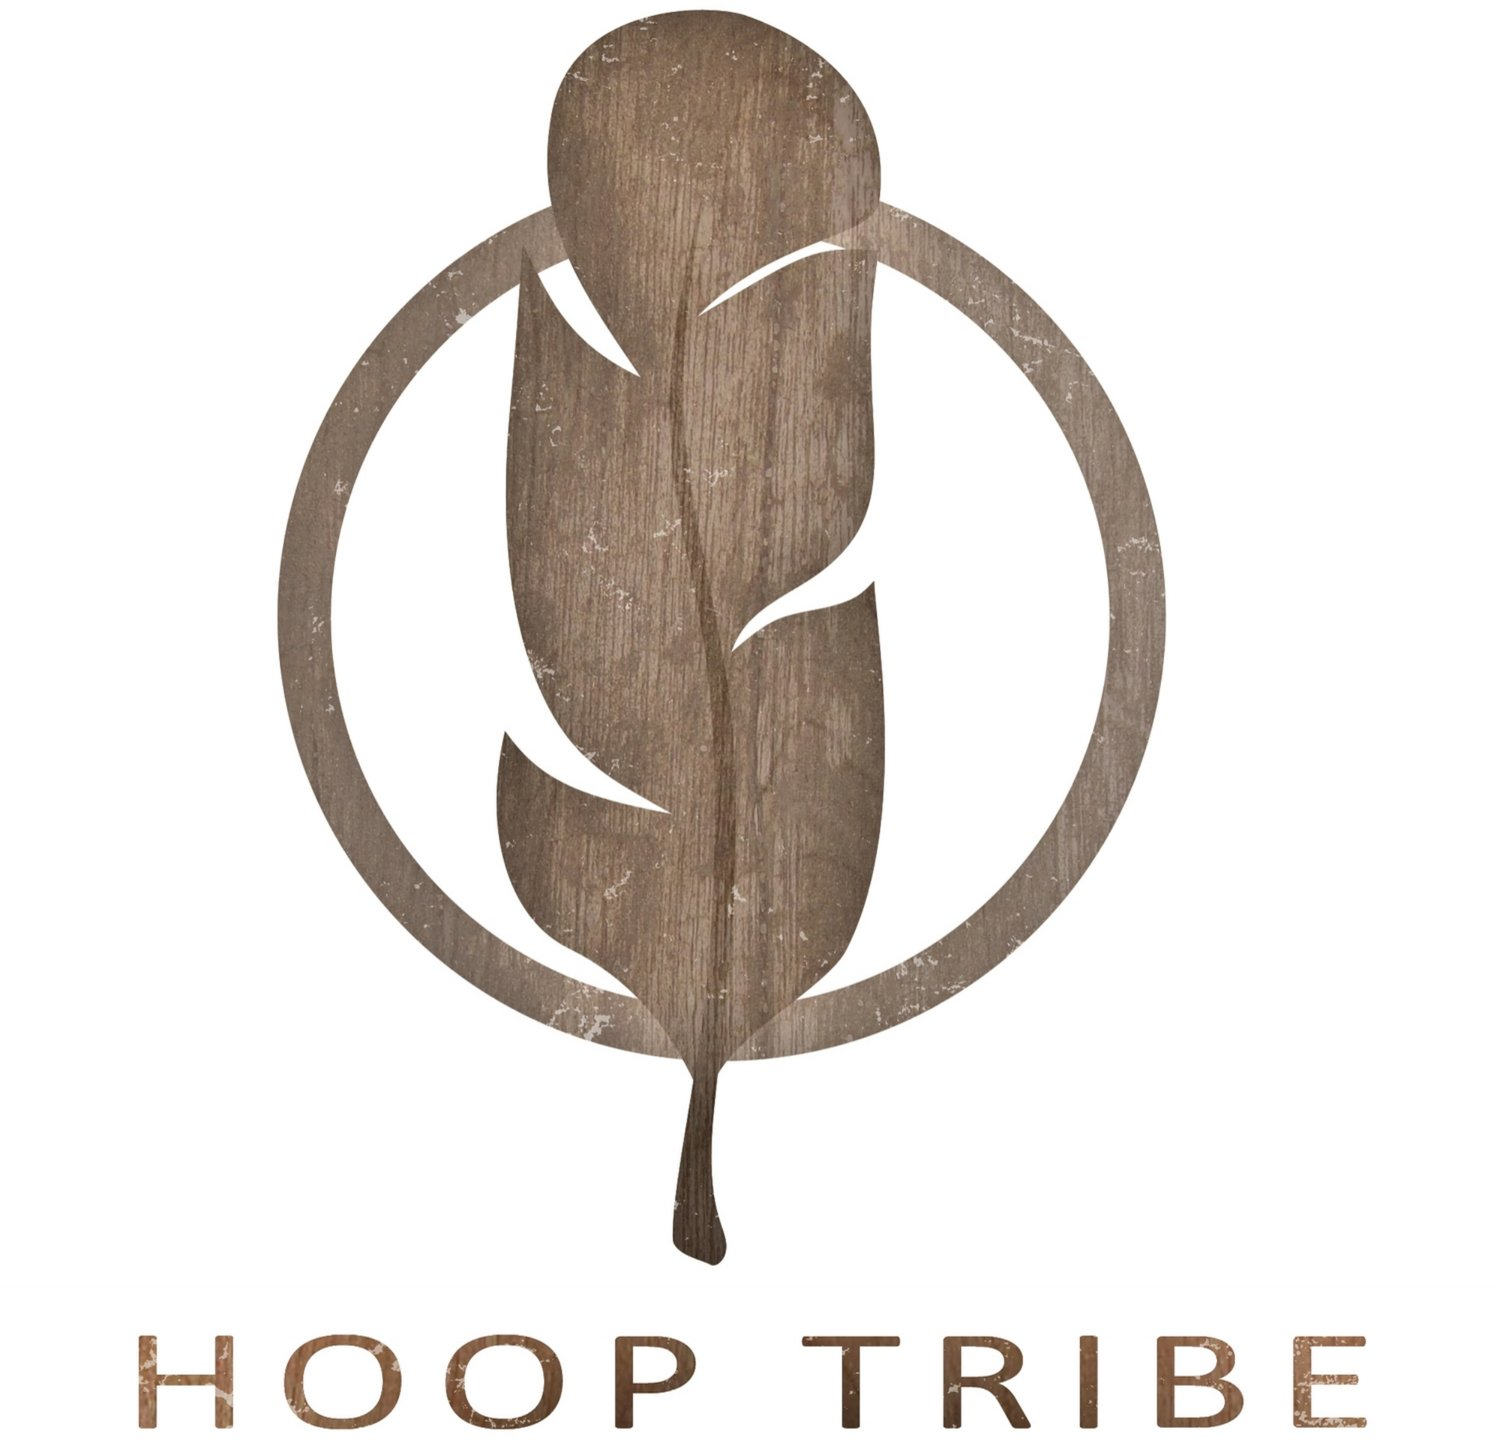 The Hoop Tribe